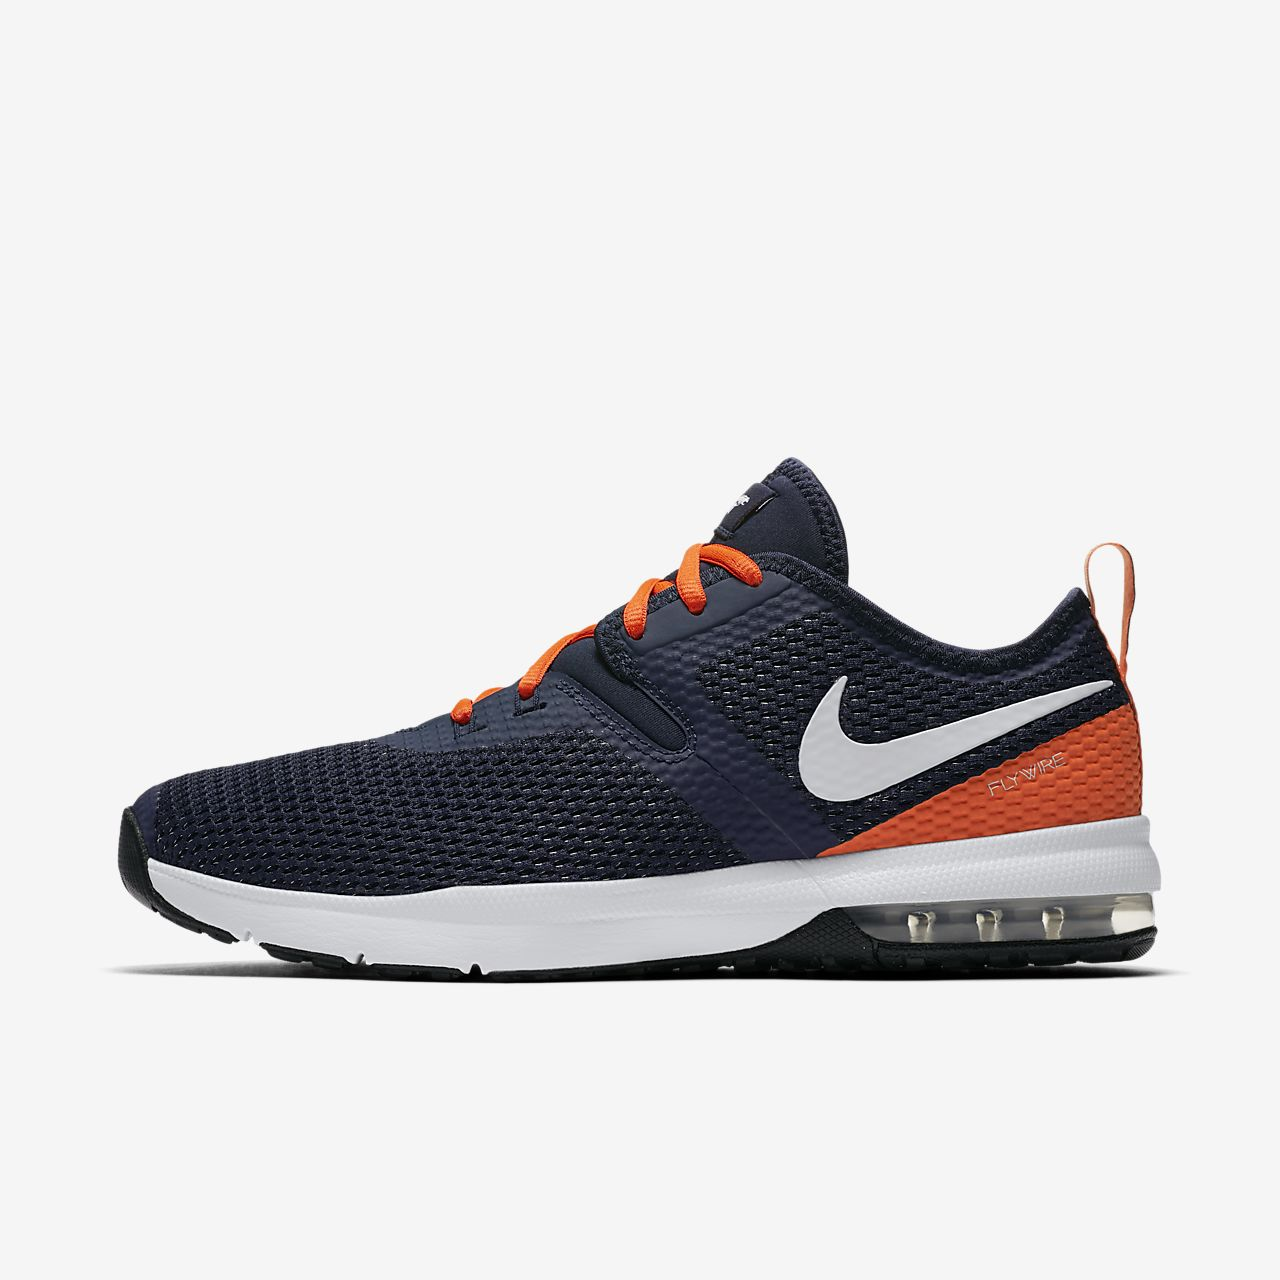 finest selection eb69b a2d97 Men s Gym Gameday Shoe. Nike Air Max Typha 2 (NFL Denver)